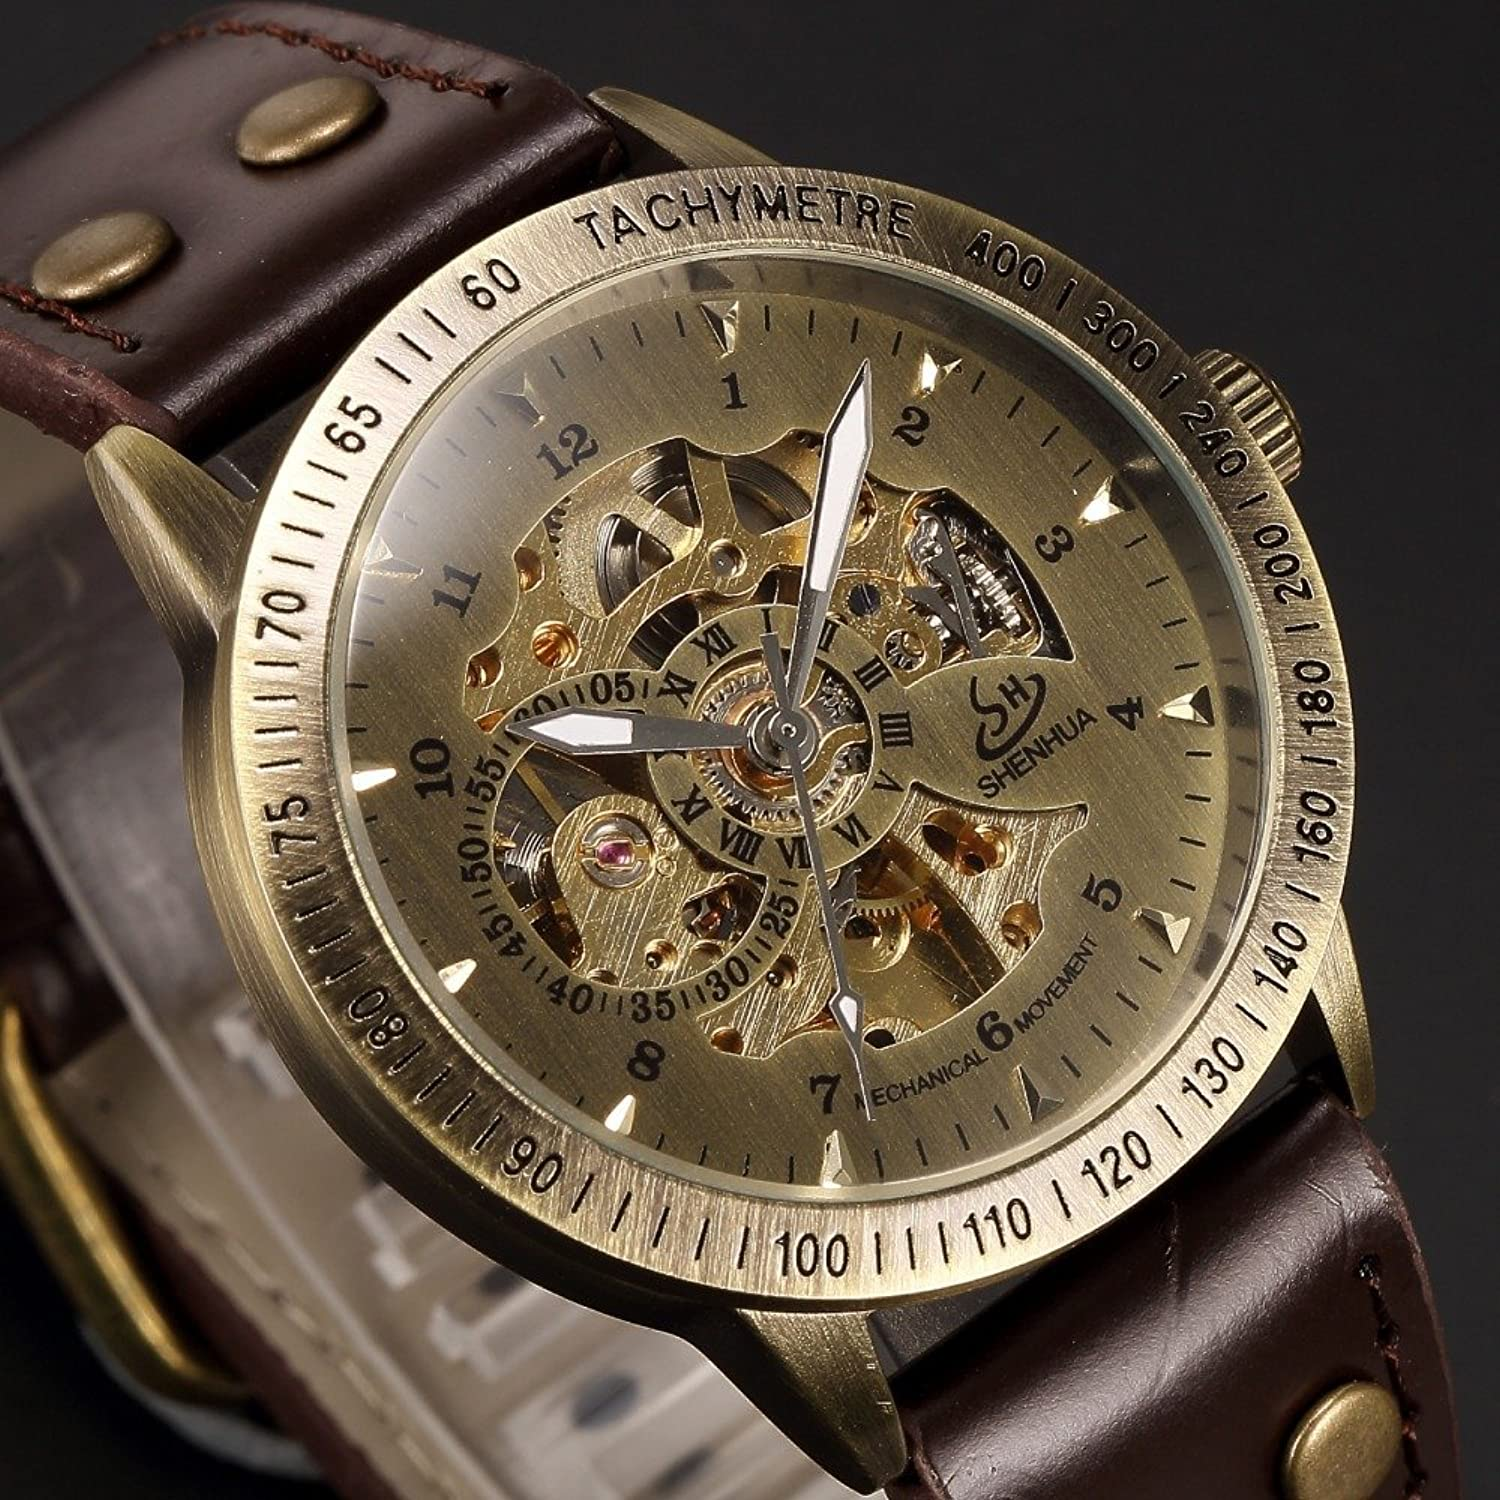 Amazon.com: Mens watch,Self-Winding Automatic Mechanical watch,Classic Luxury Bronze Skeleton Leather Wrist Watch: Watches